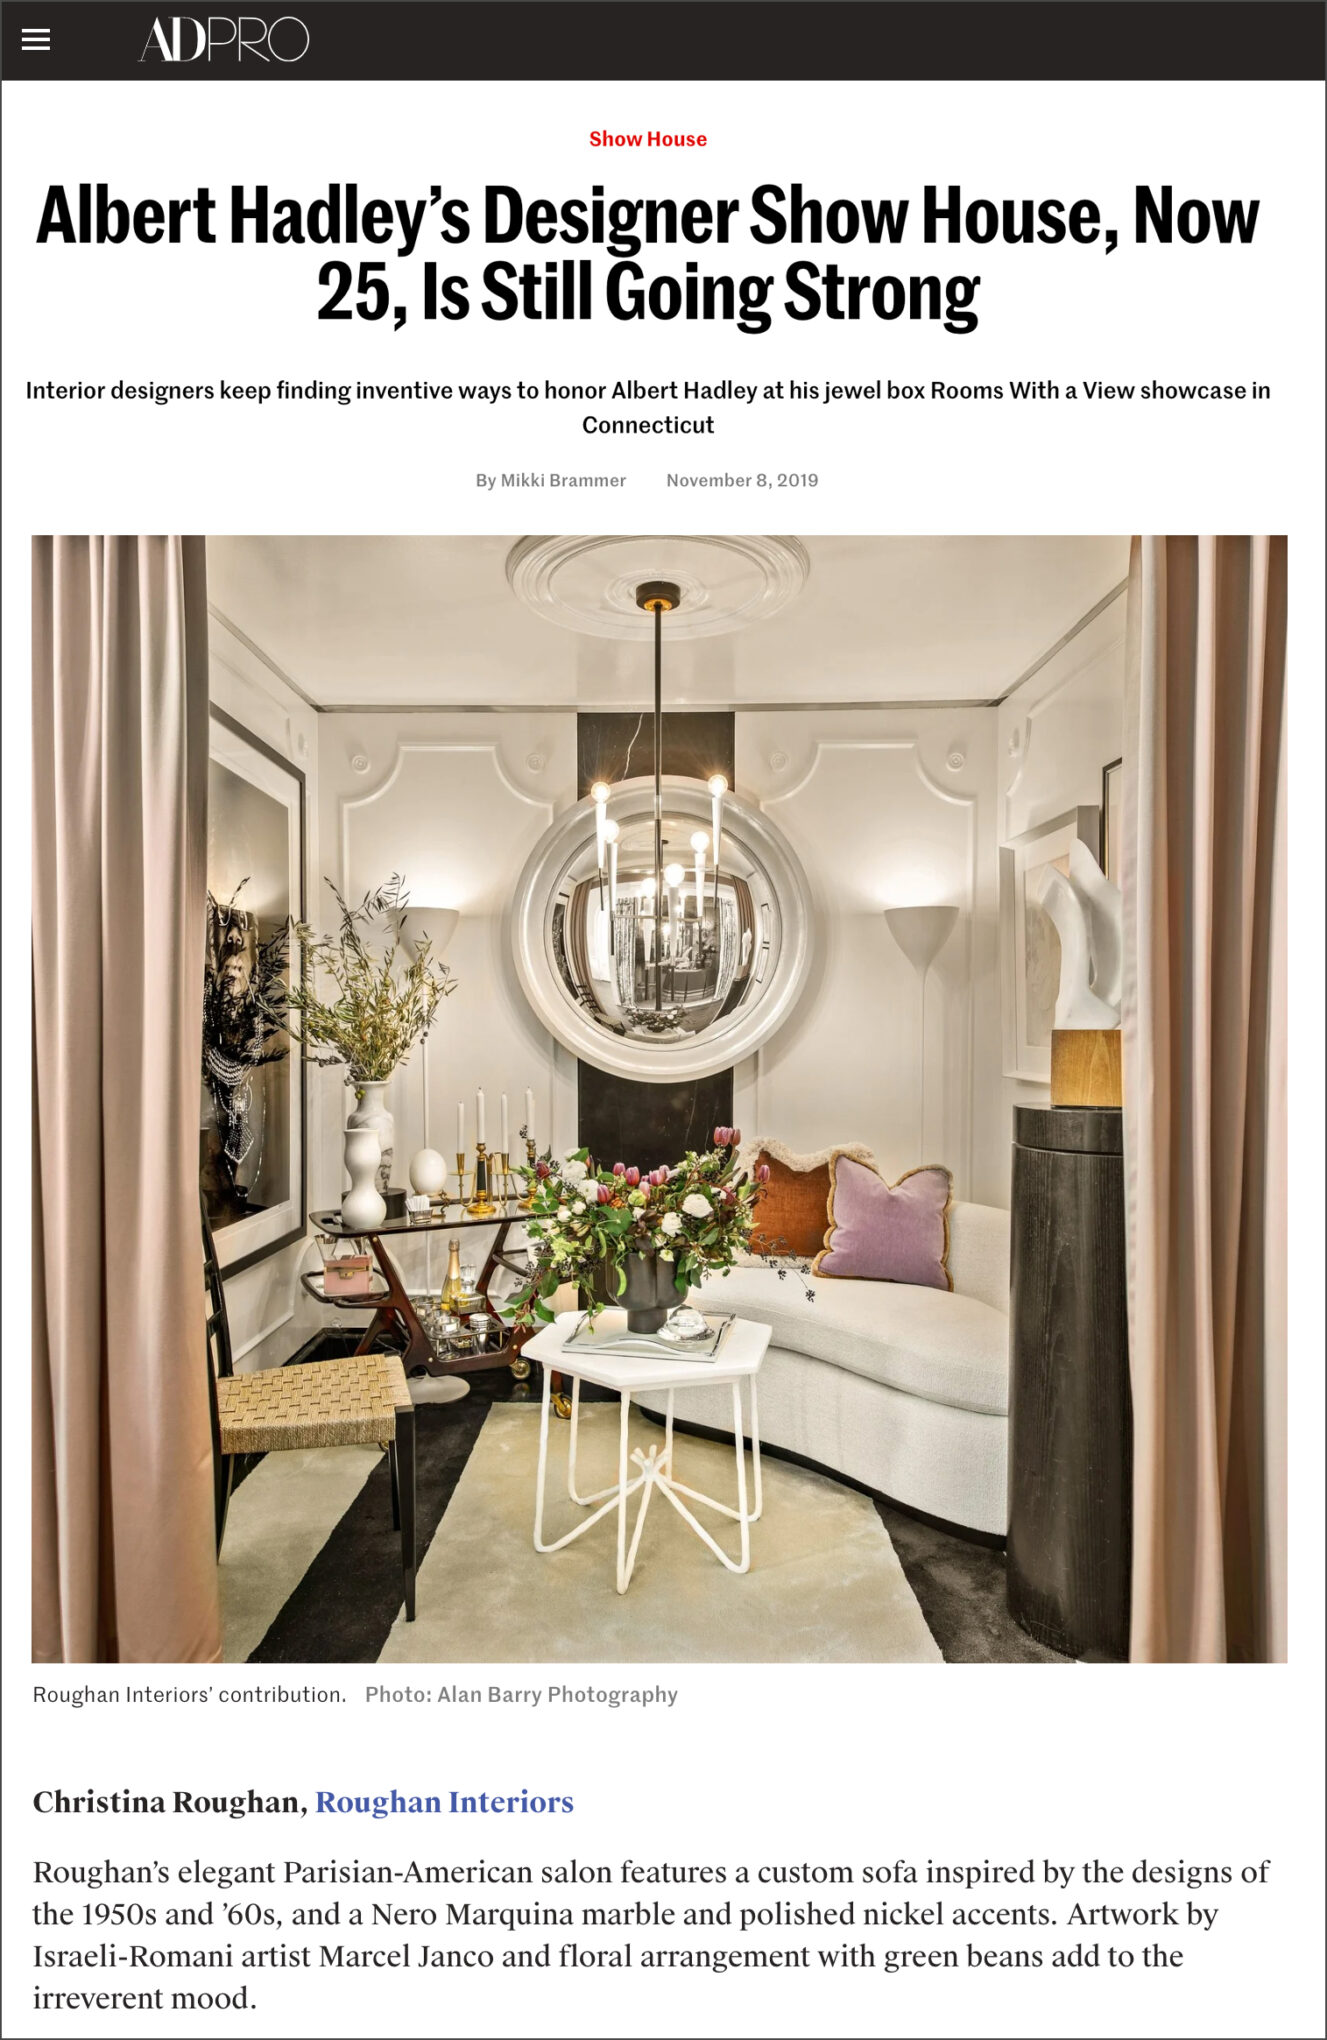 Architectural Digest Article Clipping